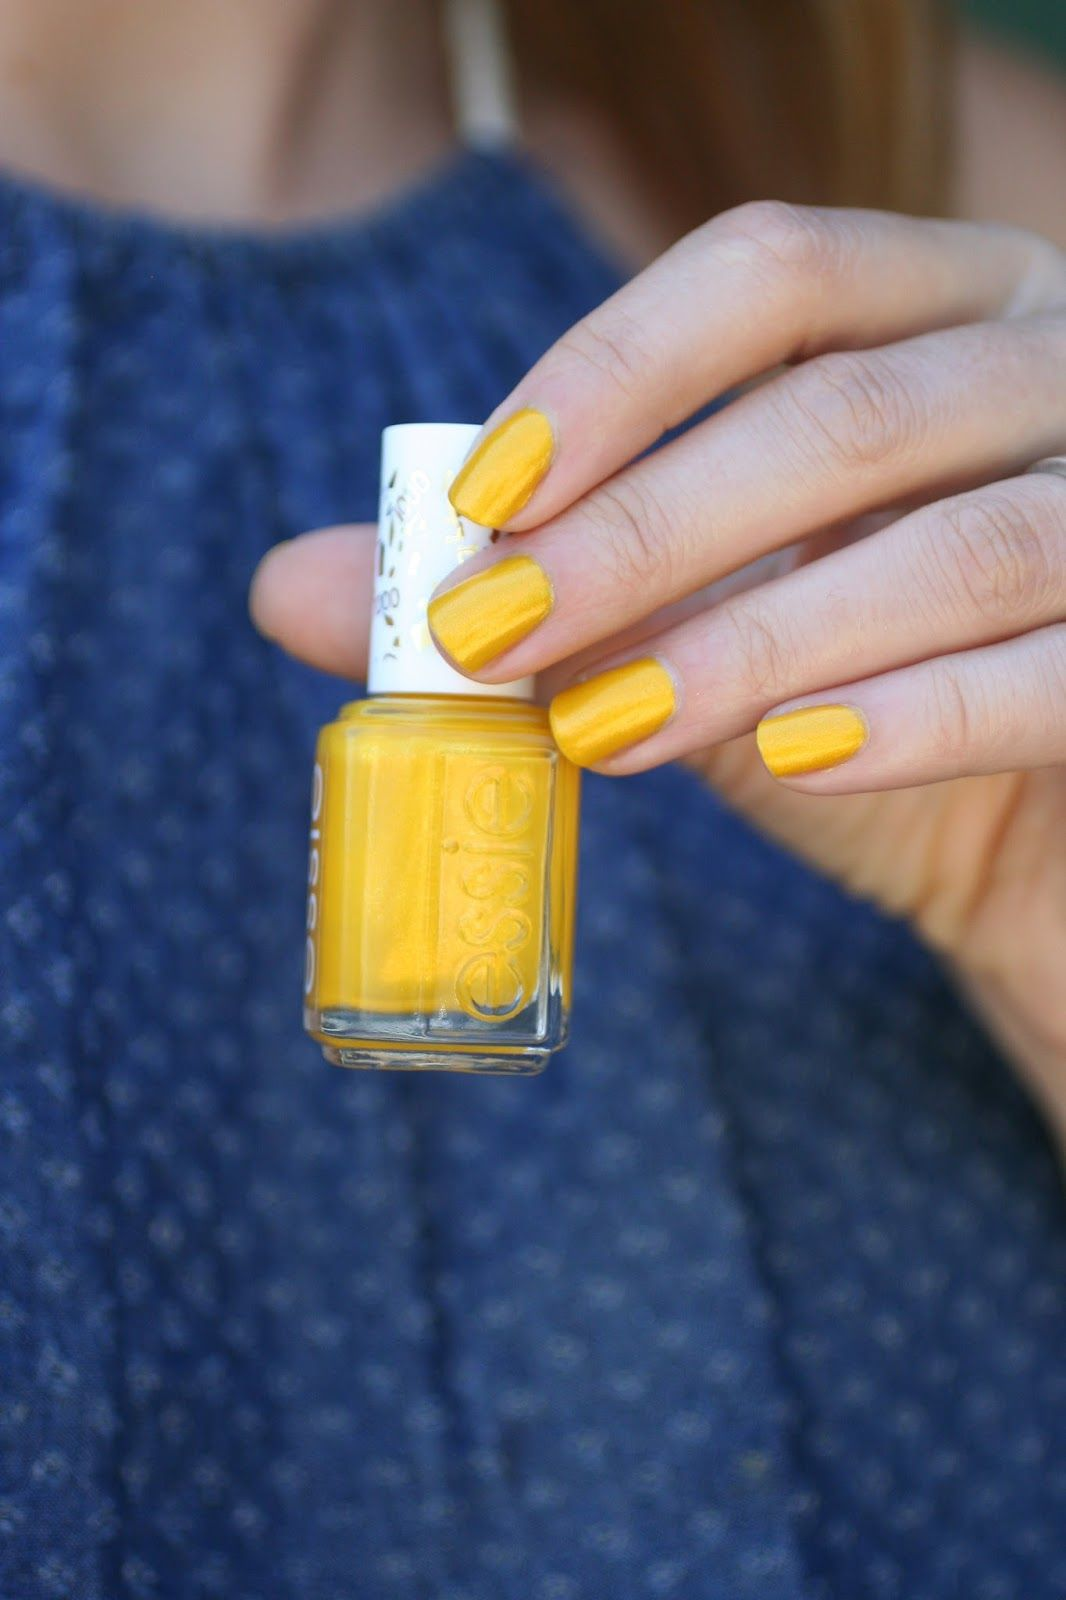 So Essie finally made a yellow?! In 35 years, Essie has only made a ...